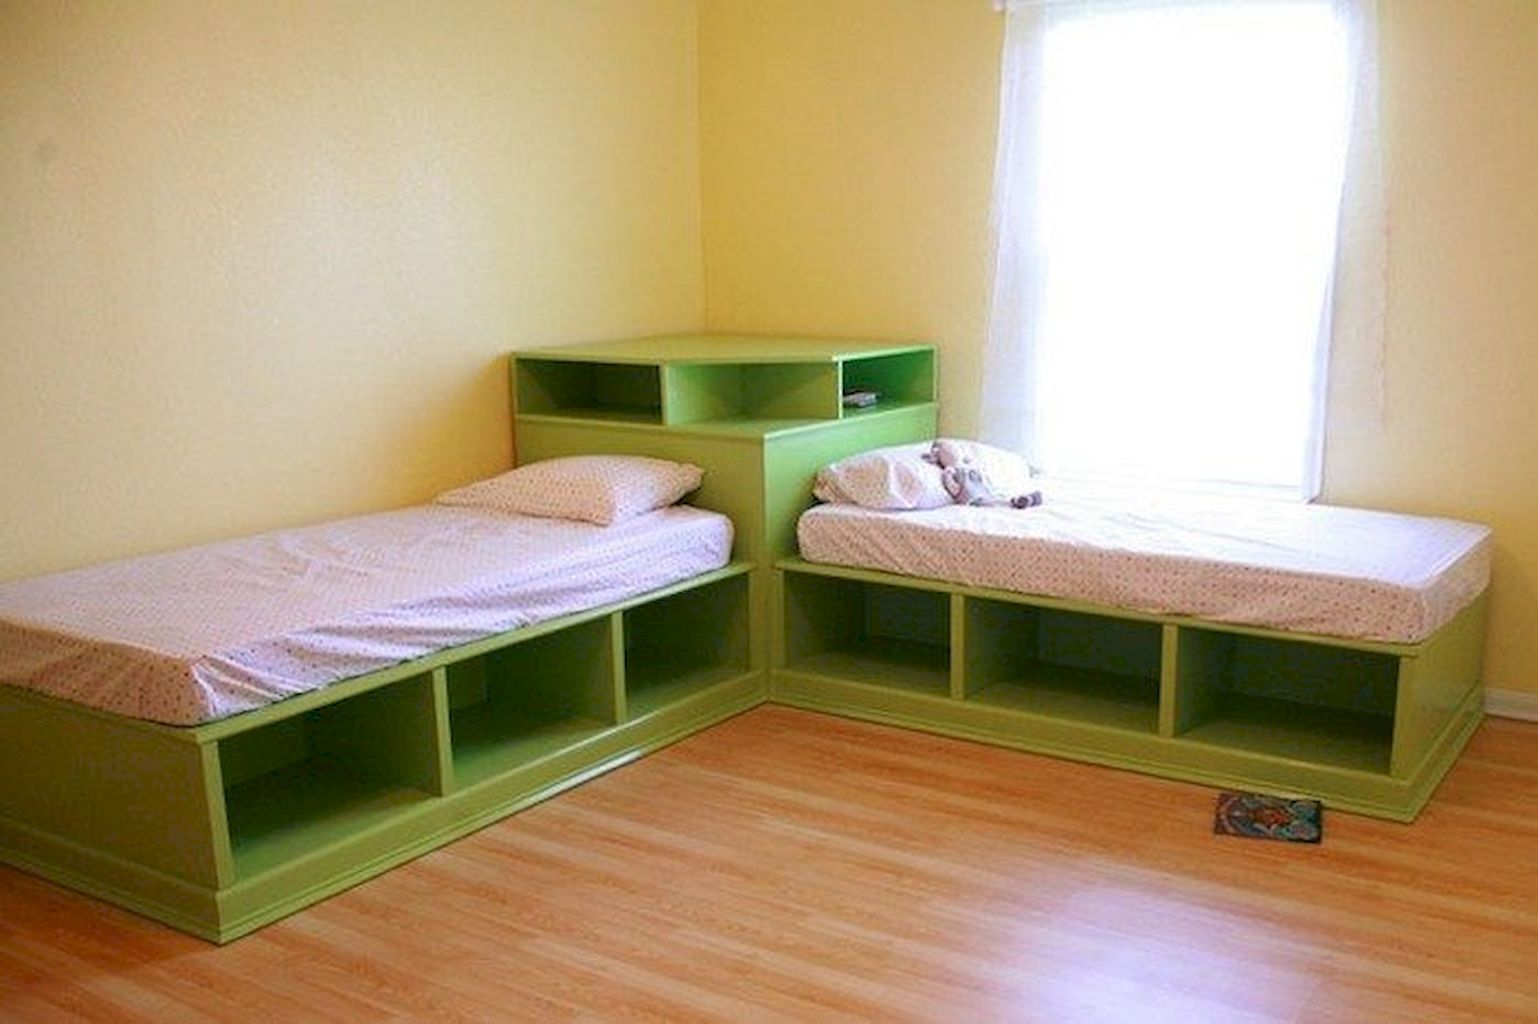 Corner Twin Beds With Storage Under Them